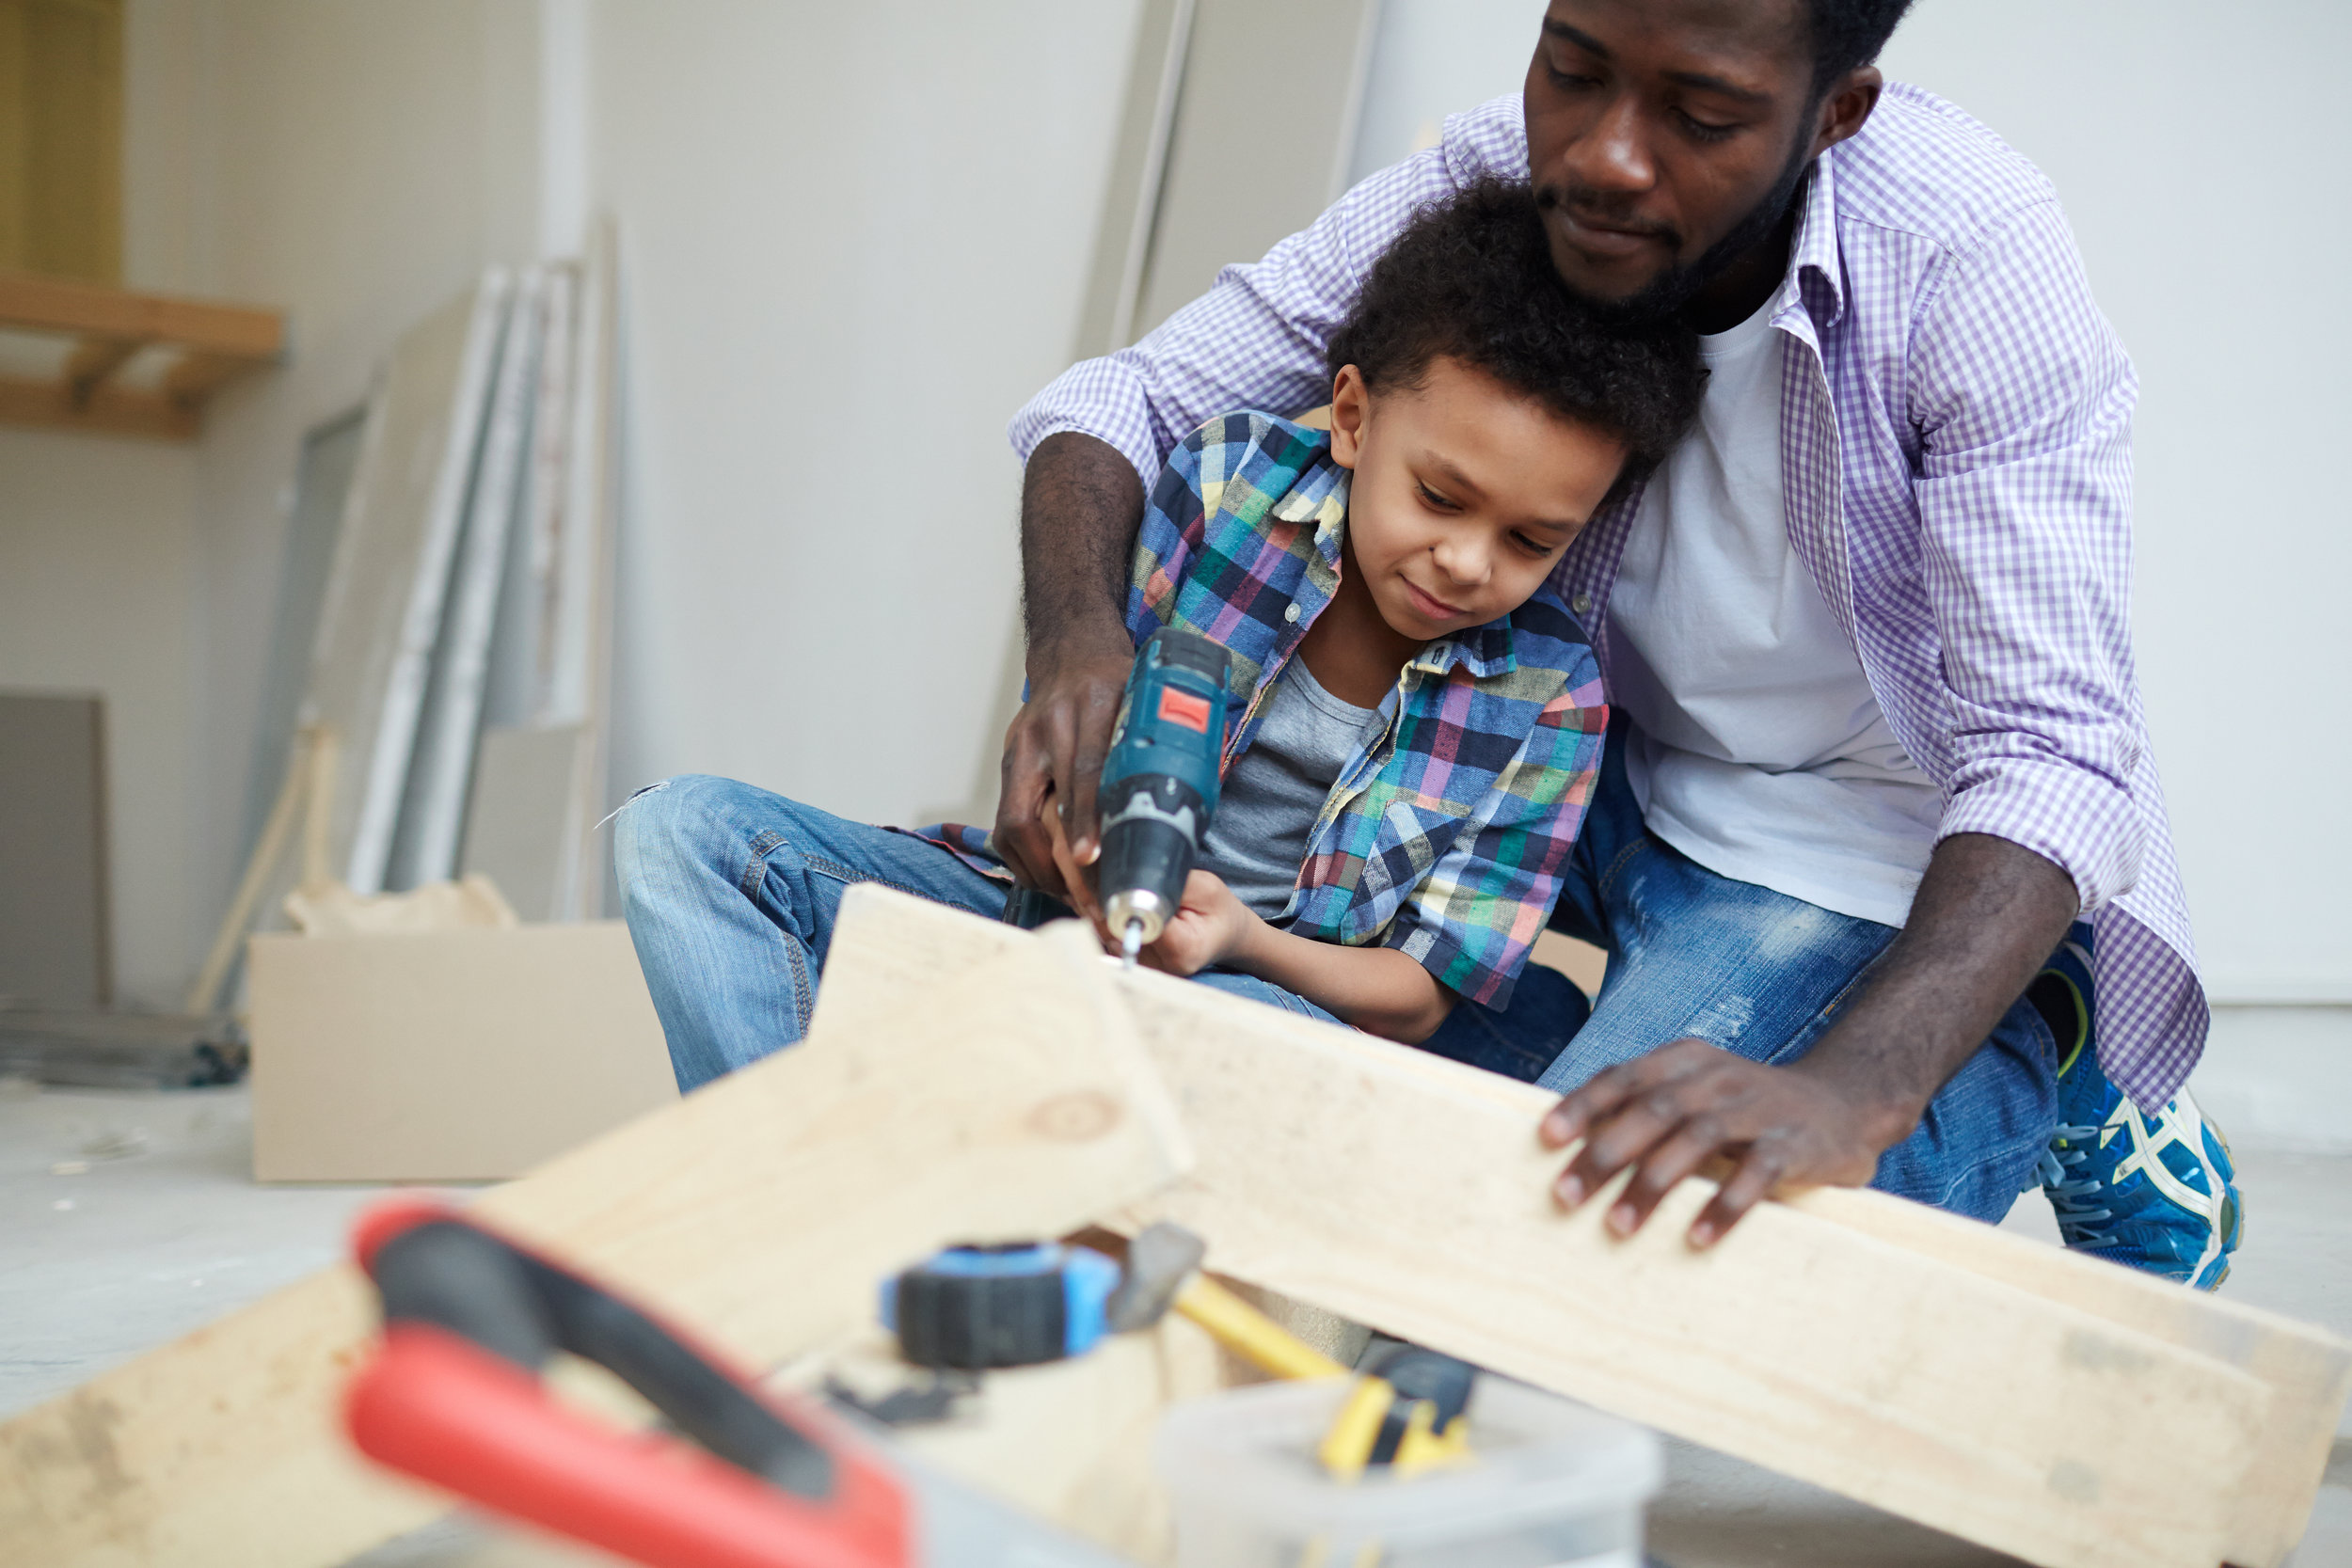 storyblocks-young-man-showing-his-son-how-to-work-with-electric-drill_HUXpoN8w0b.jpg